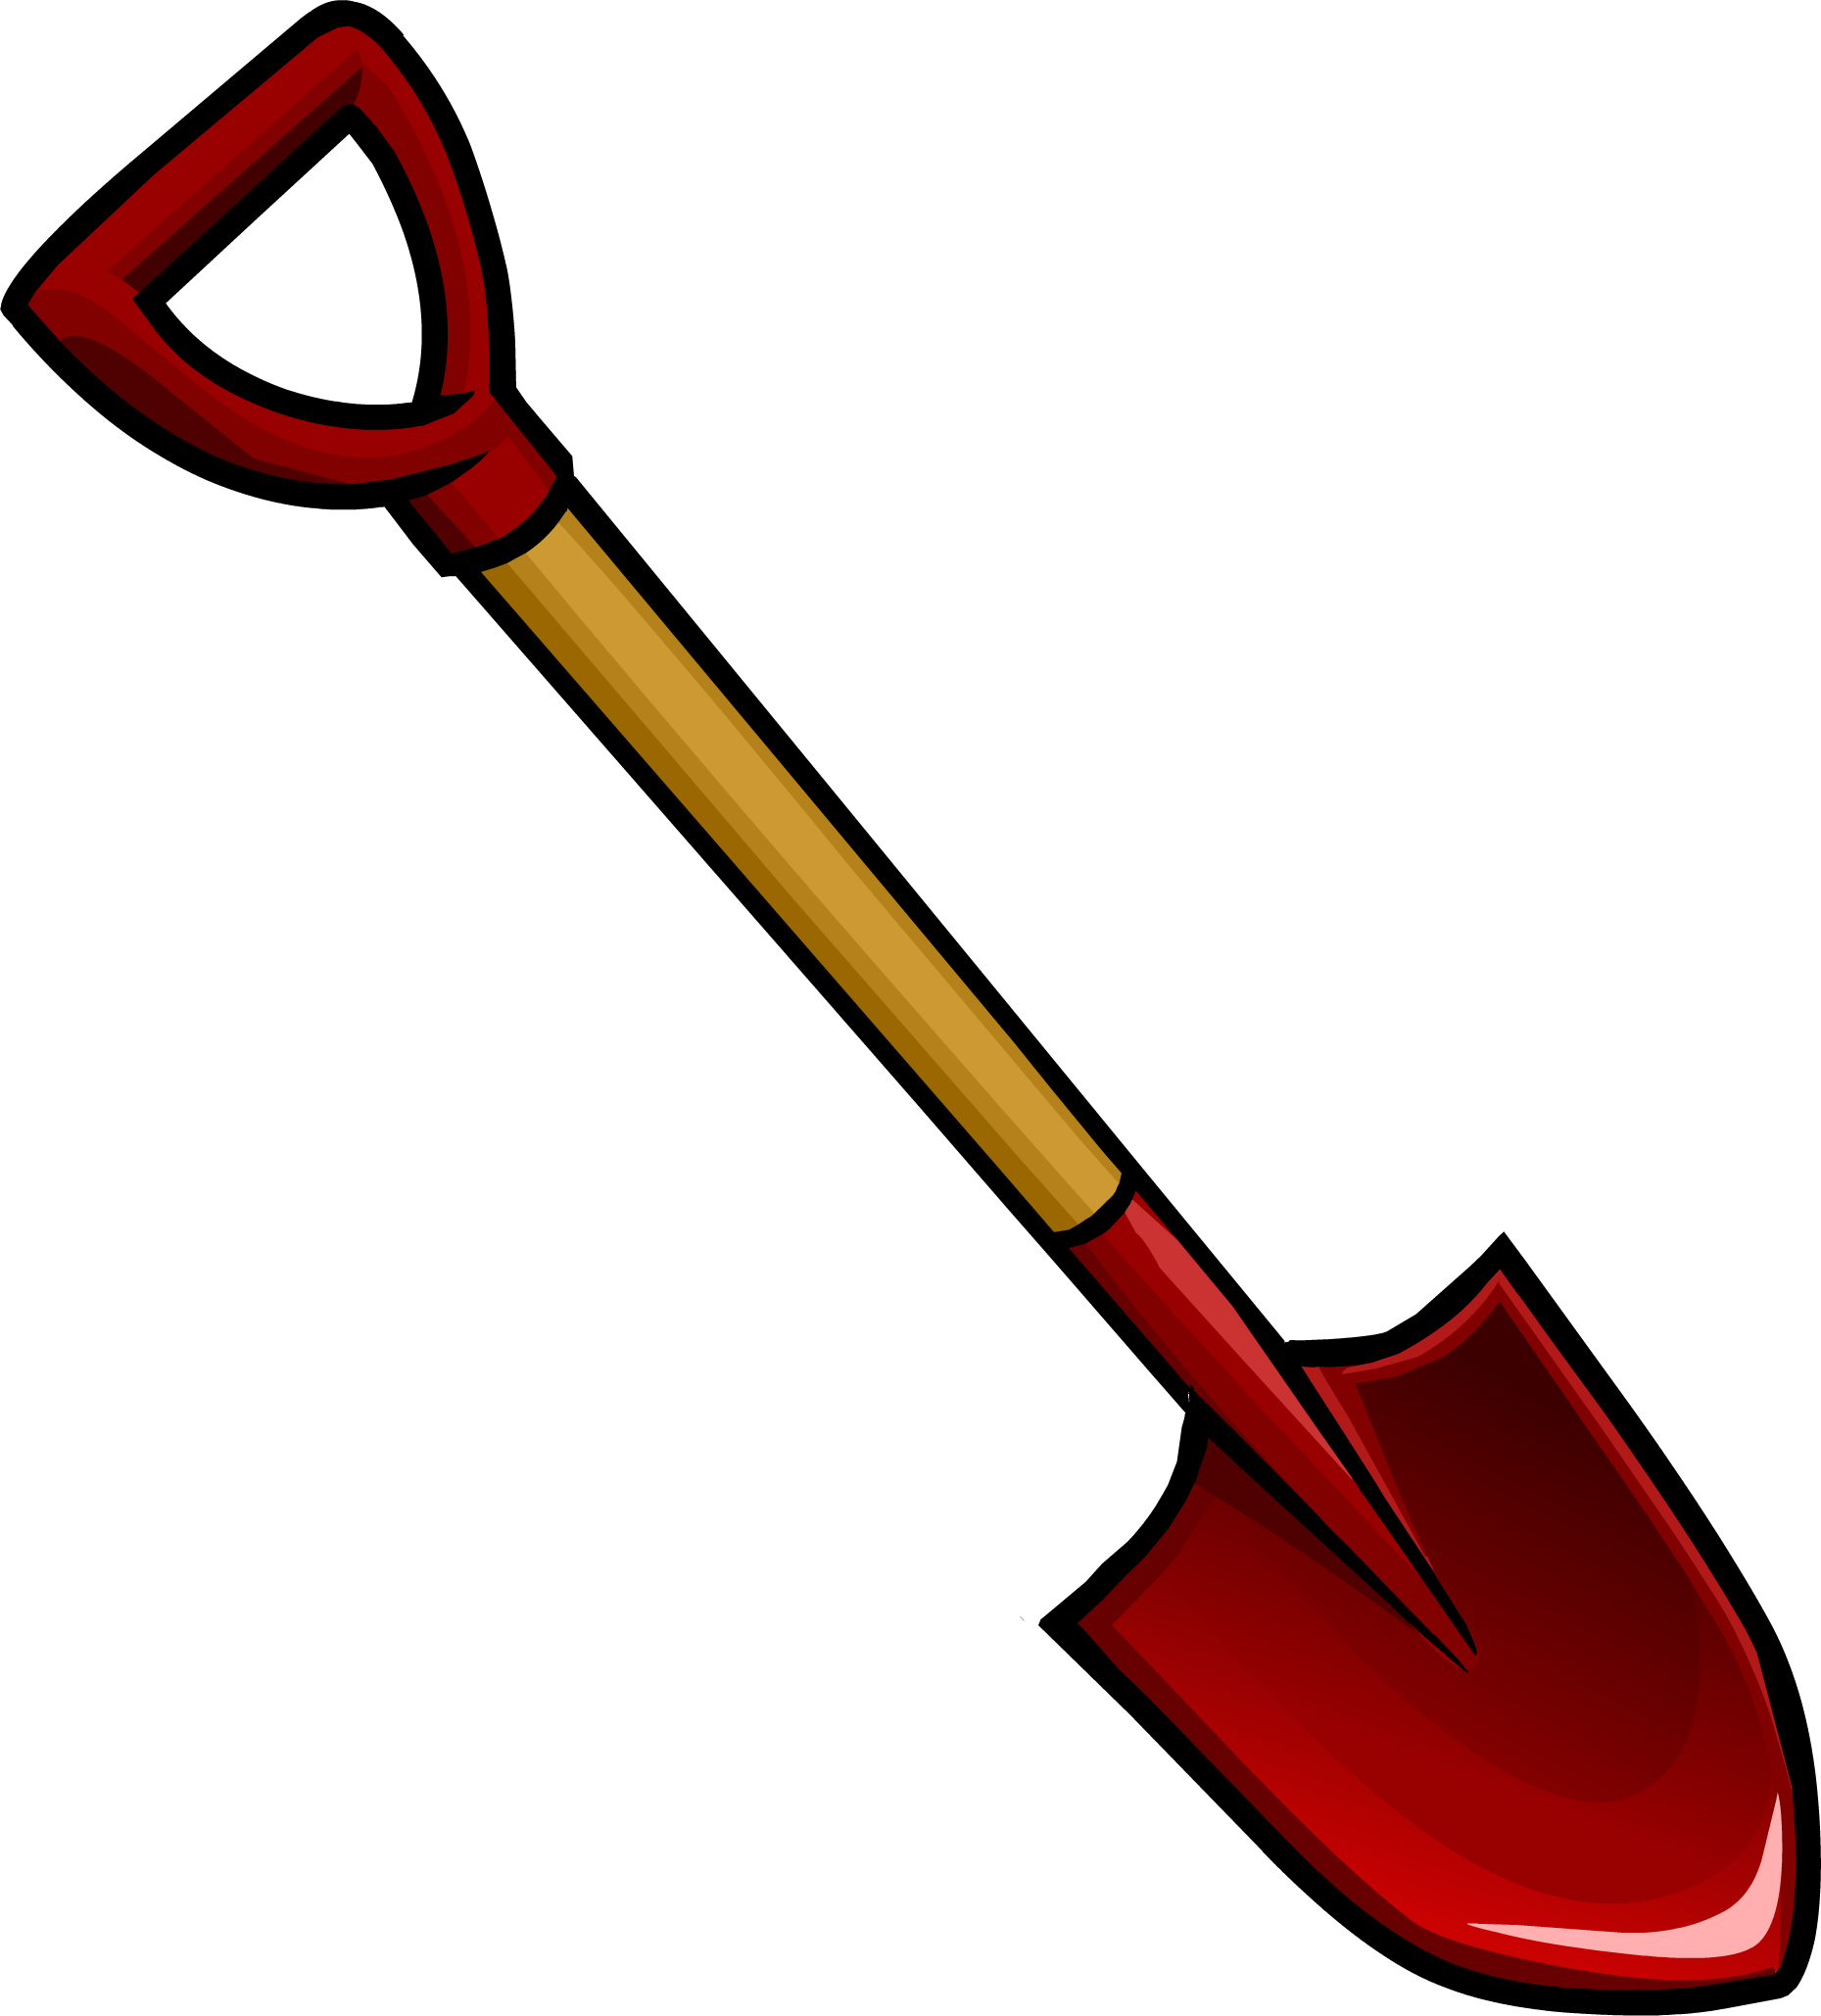 Image gardenshovel png club. Swimsuit clipart tool